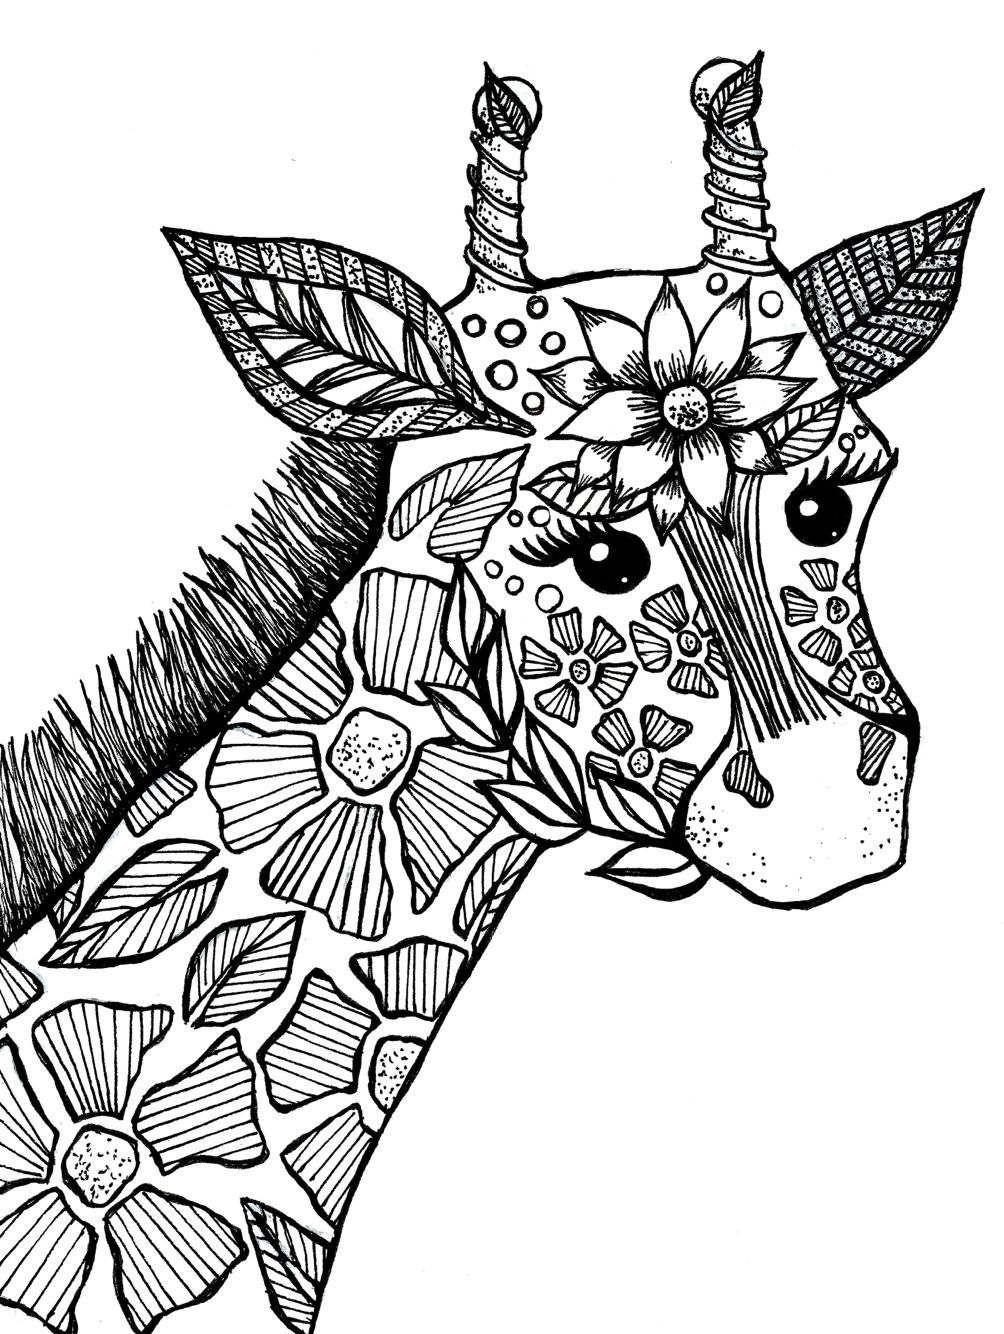 Giraffe Adult Coloring Book Page Drawings I Ve Made Adult